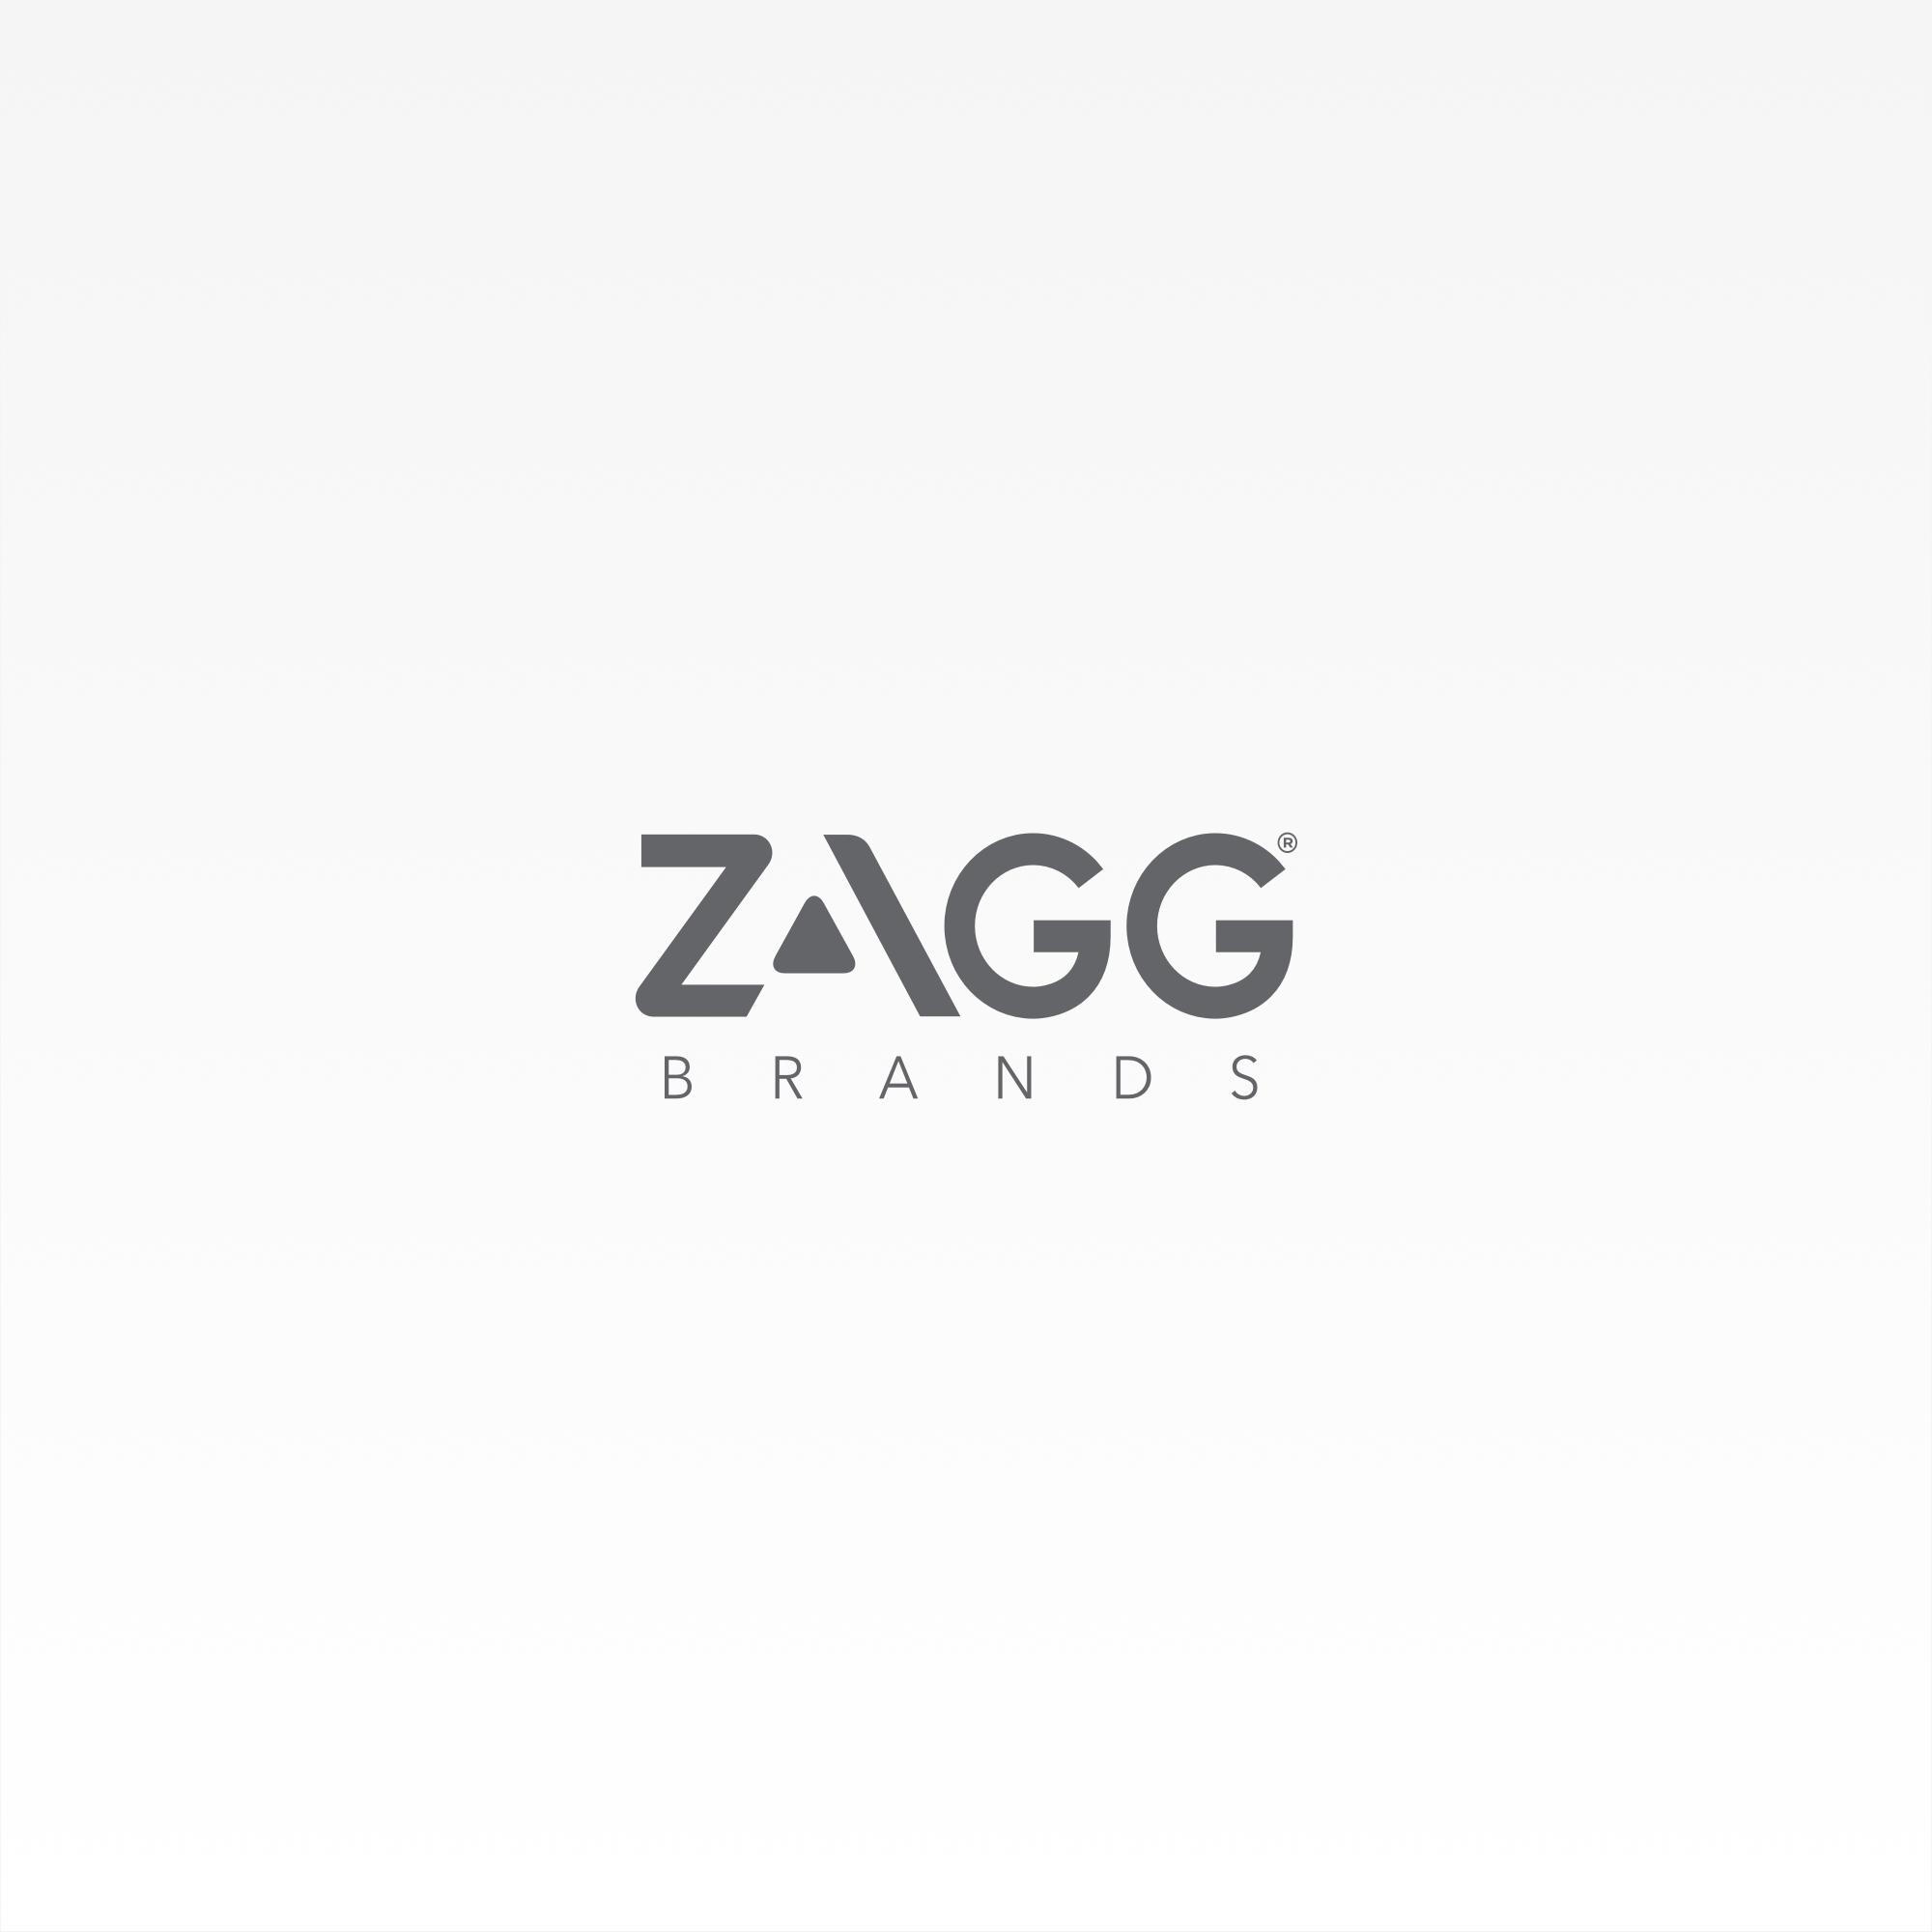 iPhone 7 Tempered Glass Screen Protector - Glass+ InvisibleShield|ZAGG